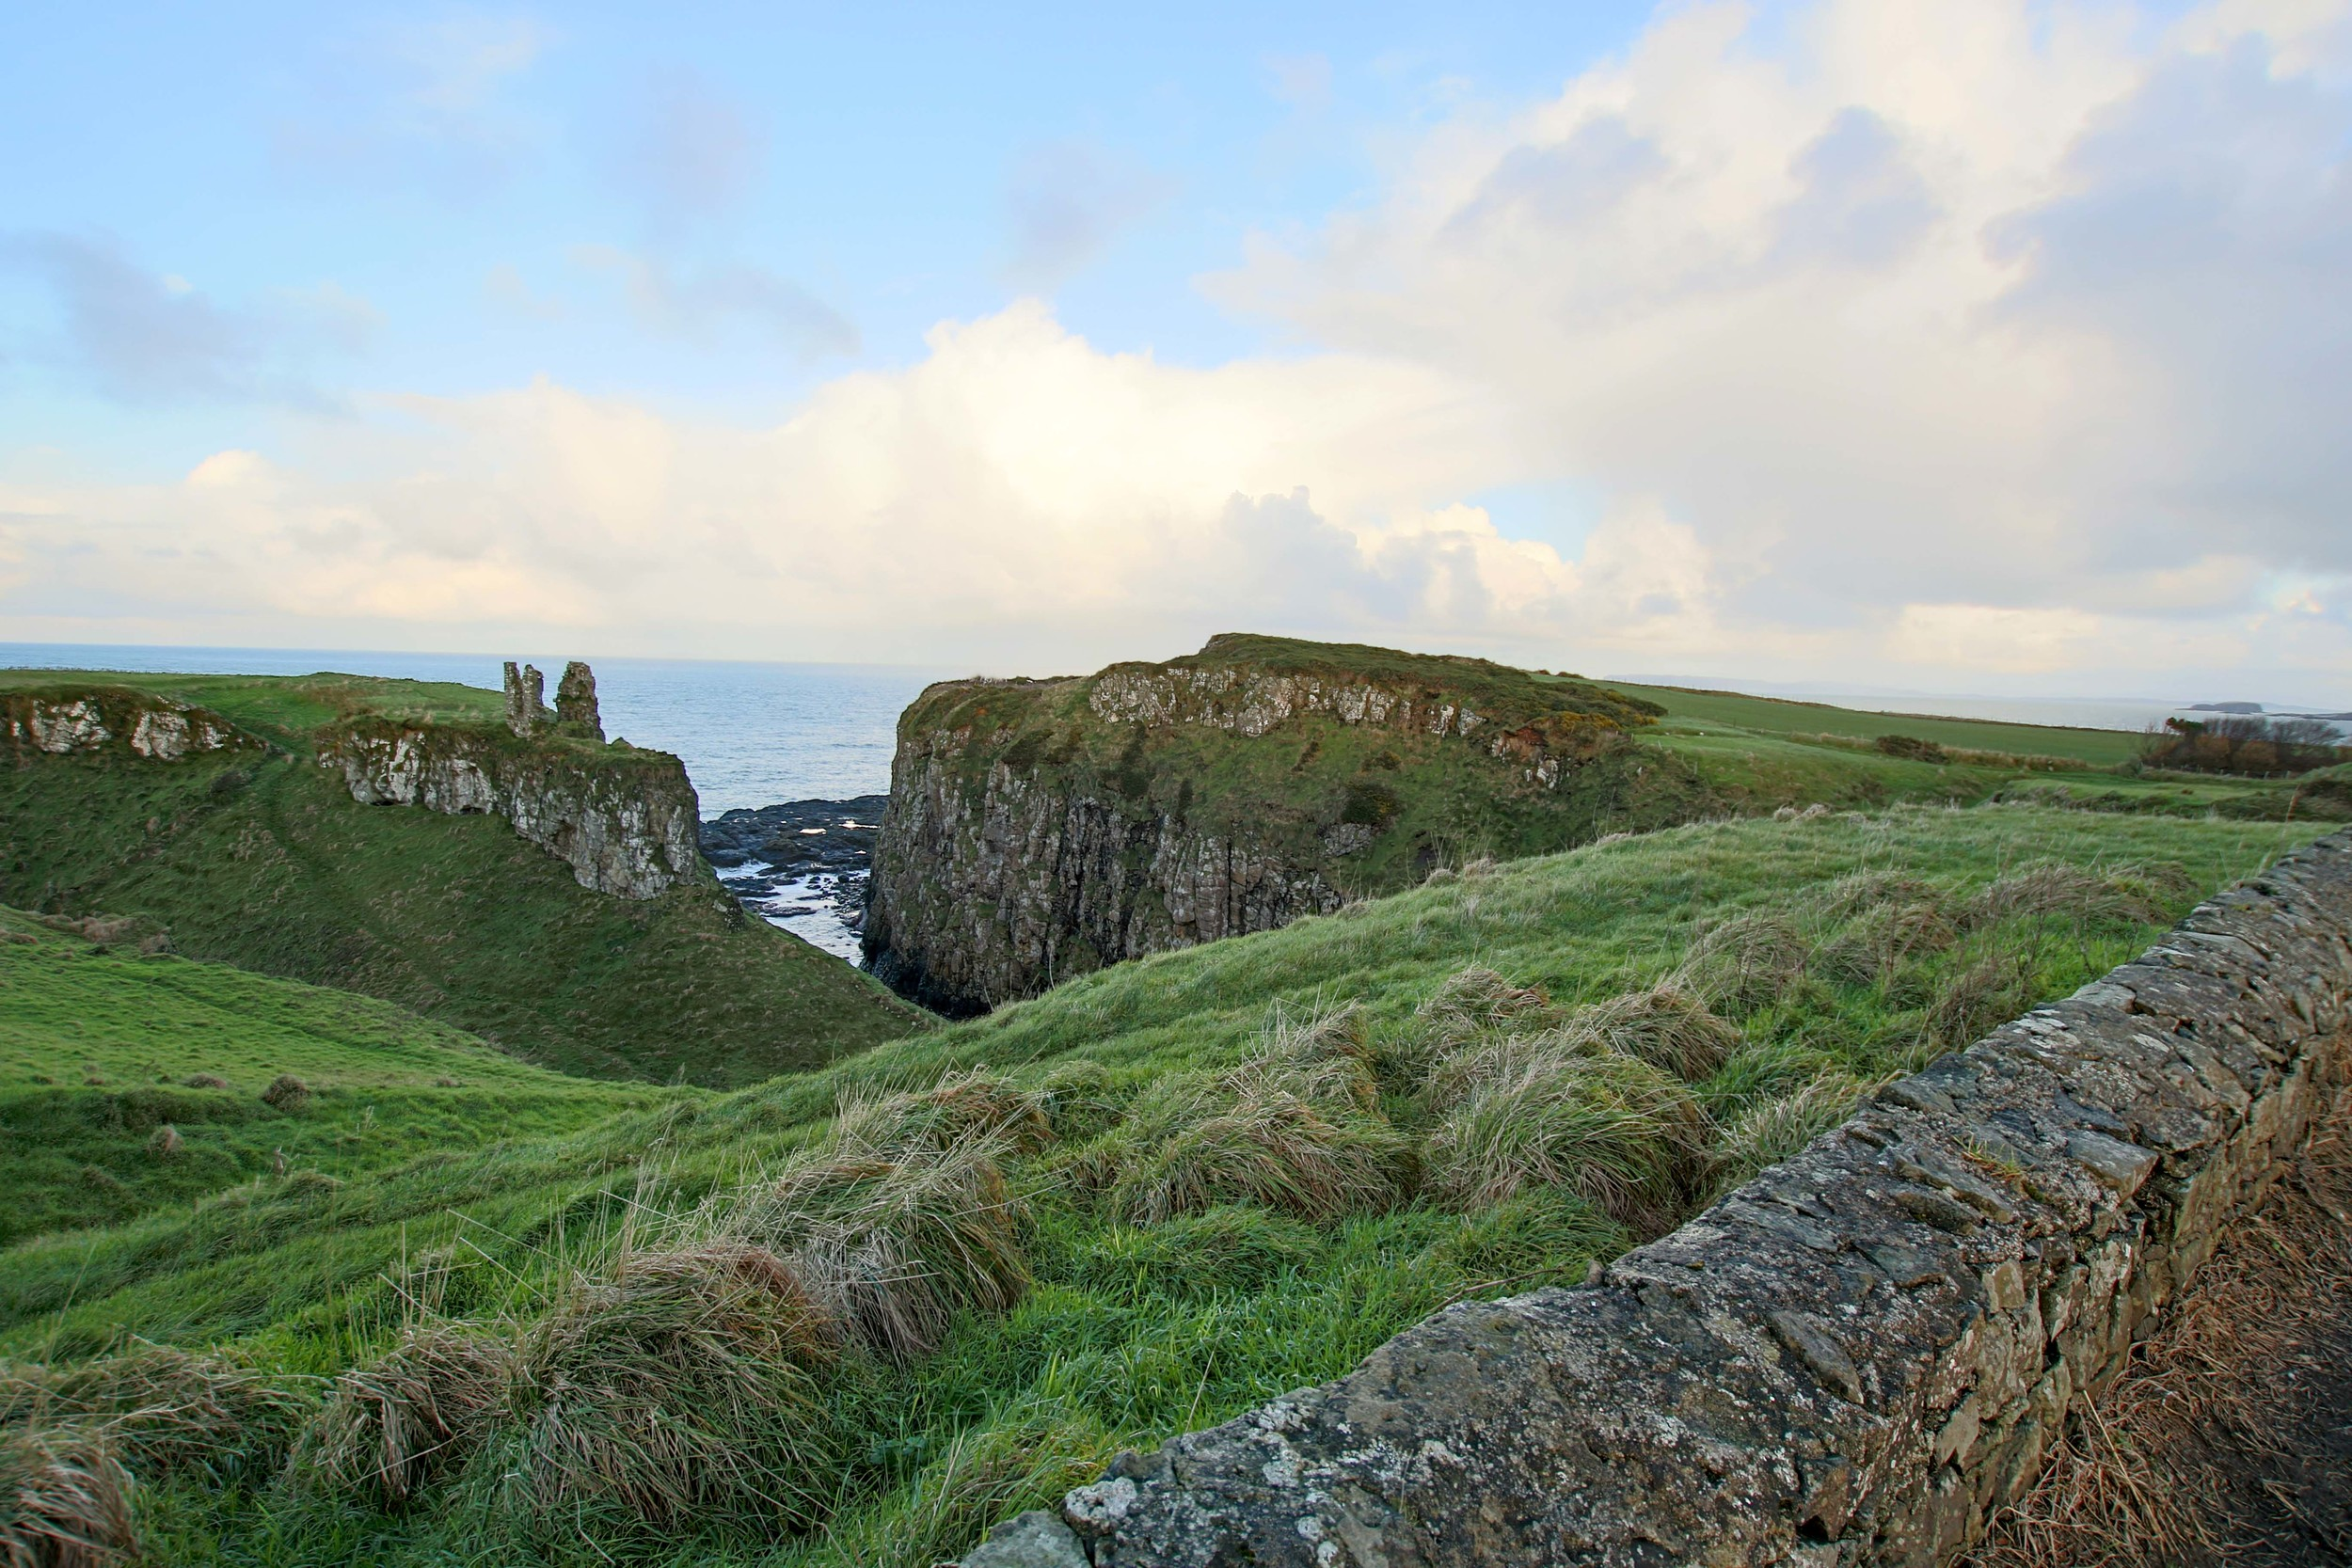 Another scenic overlook on the way to Giant's Causeway